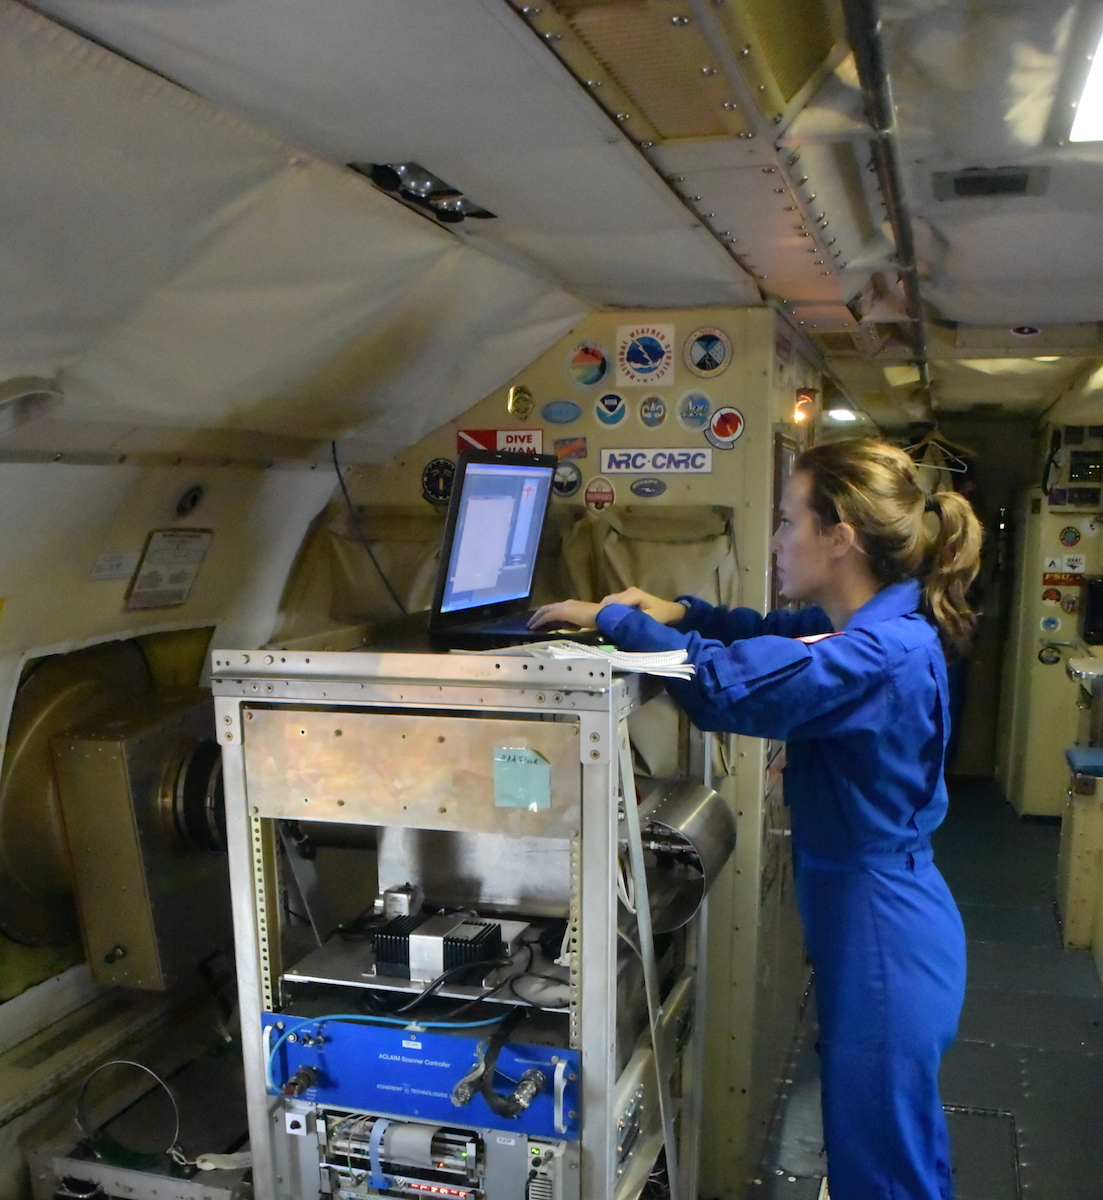 Hurricane researcher Lisa Bucci analyzing storm data aboard the P-3 aircraft. Image credit: NOAA